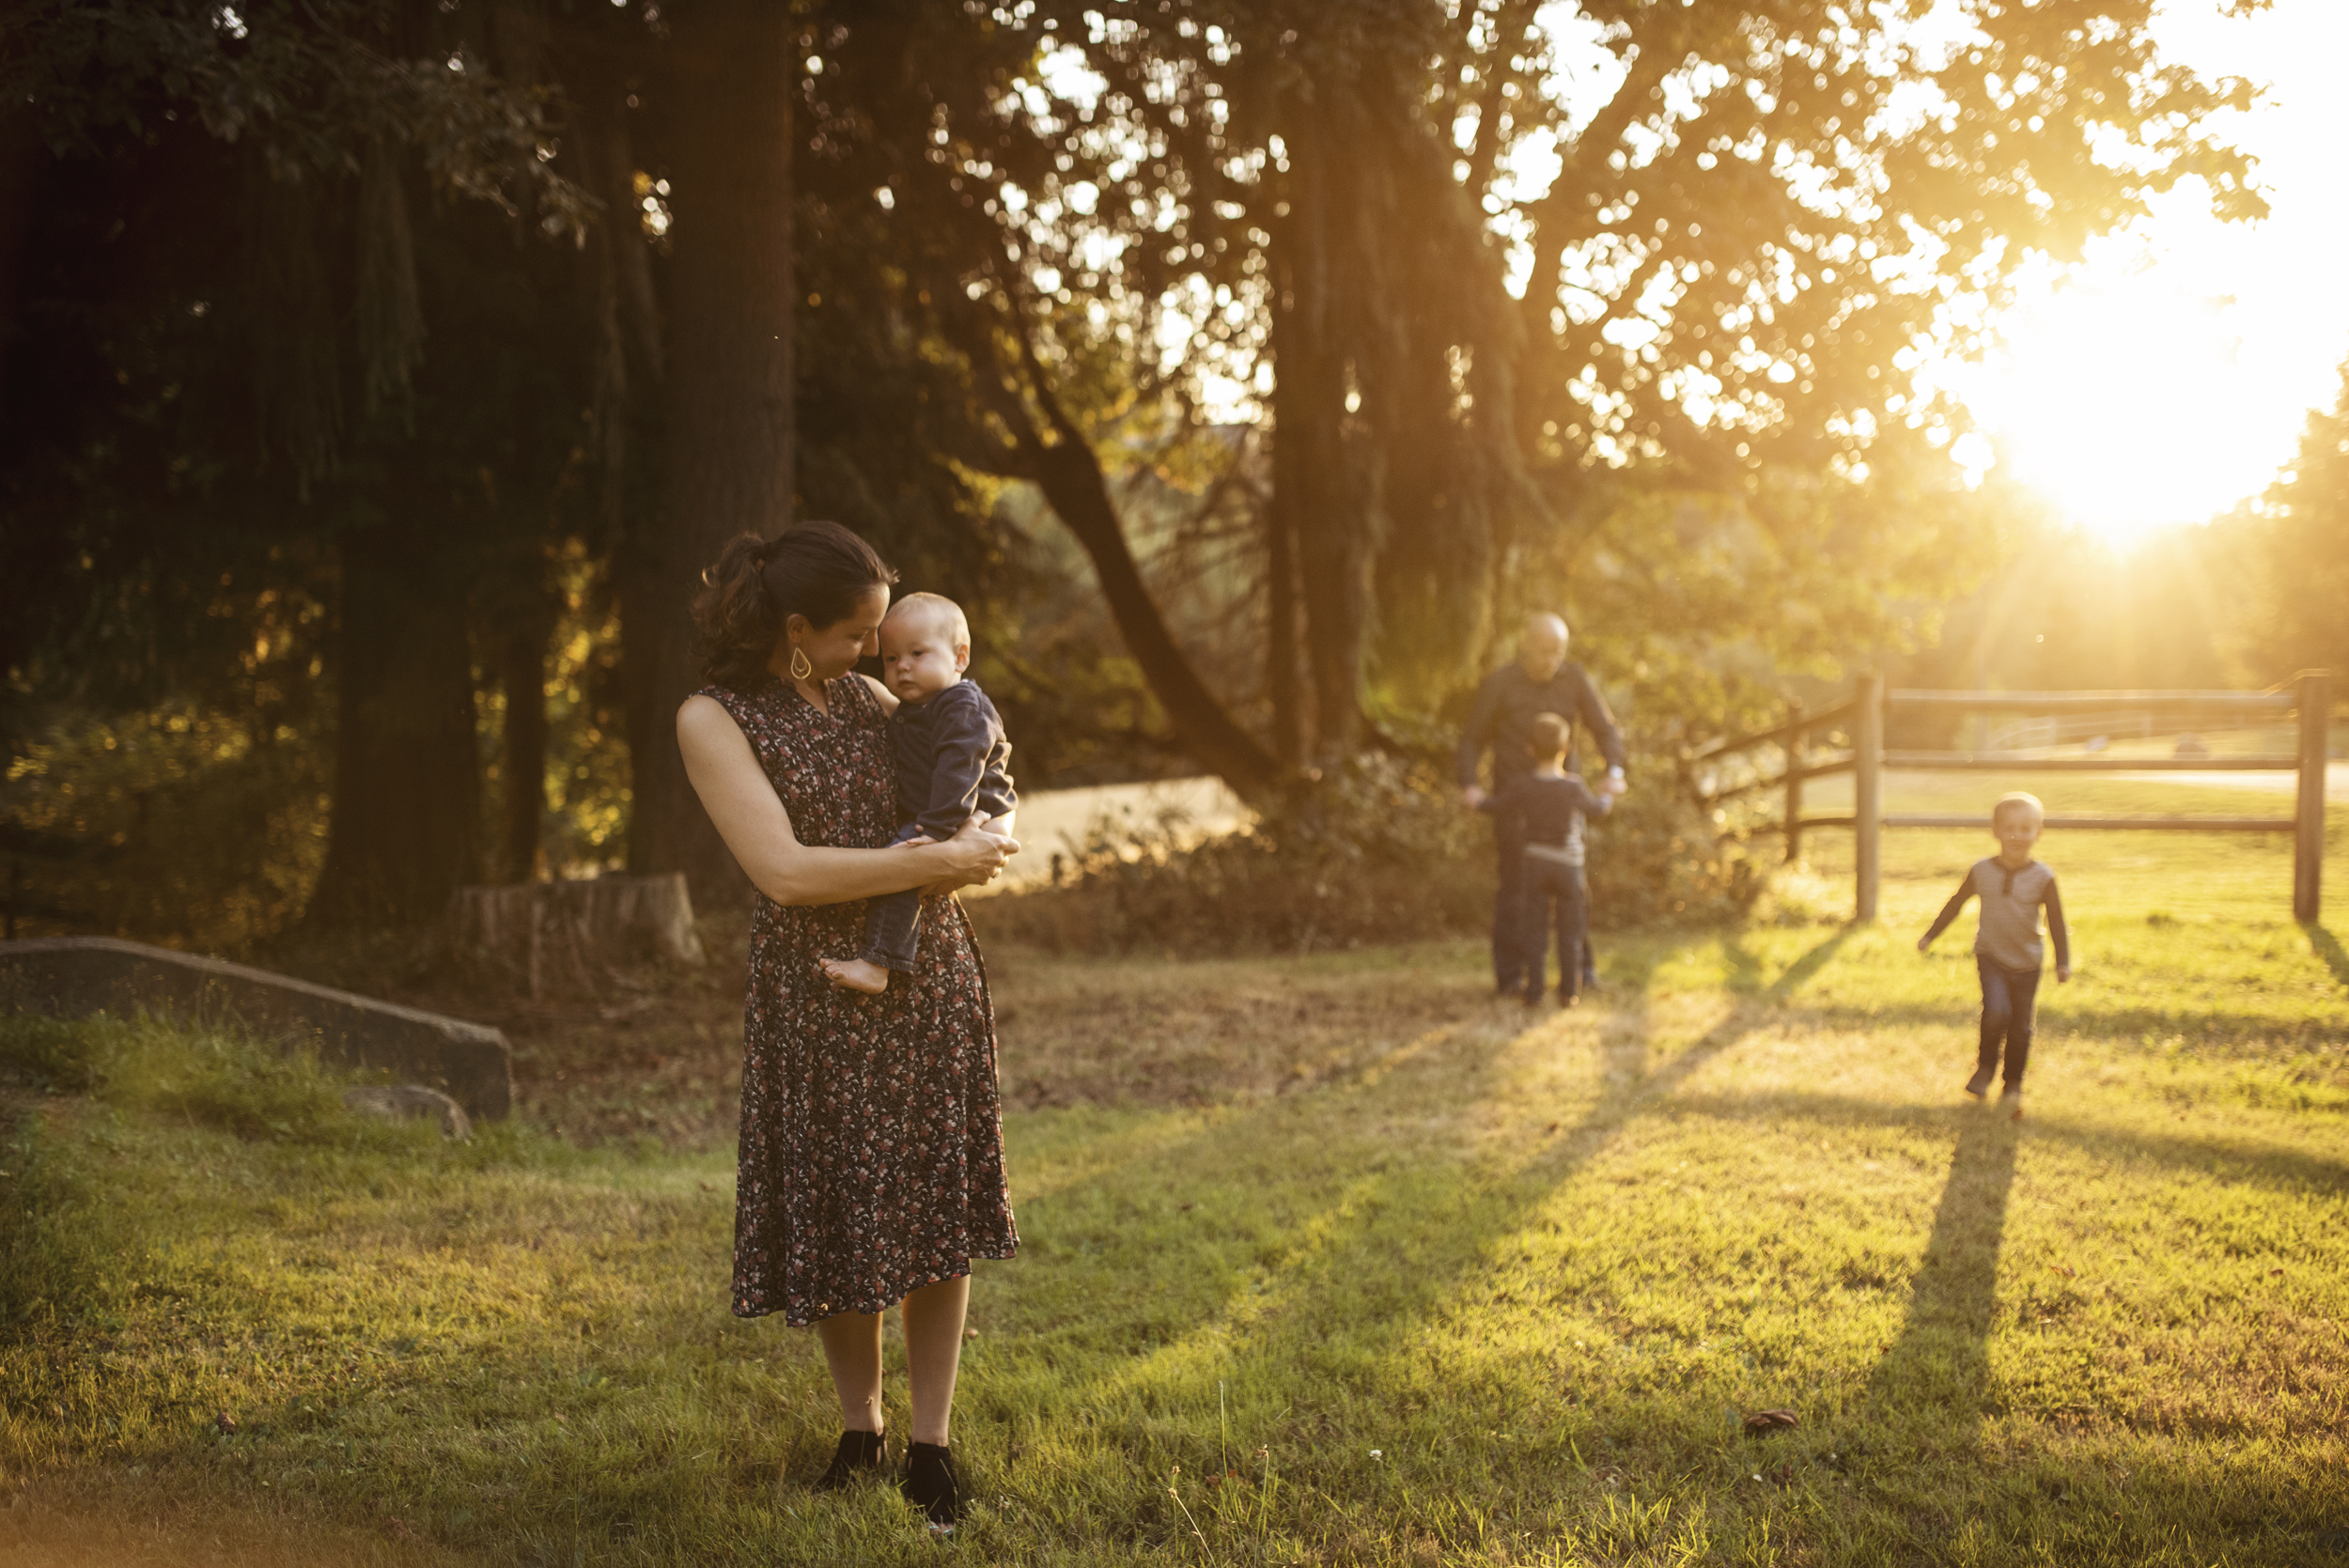 Seattle lifestyle photographer mom is holding baby while big kids and dad play in background